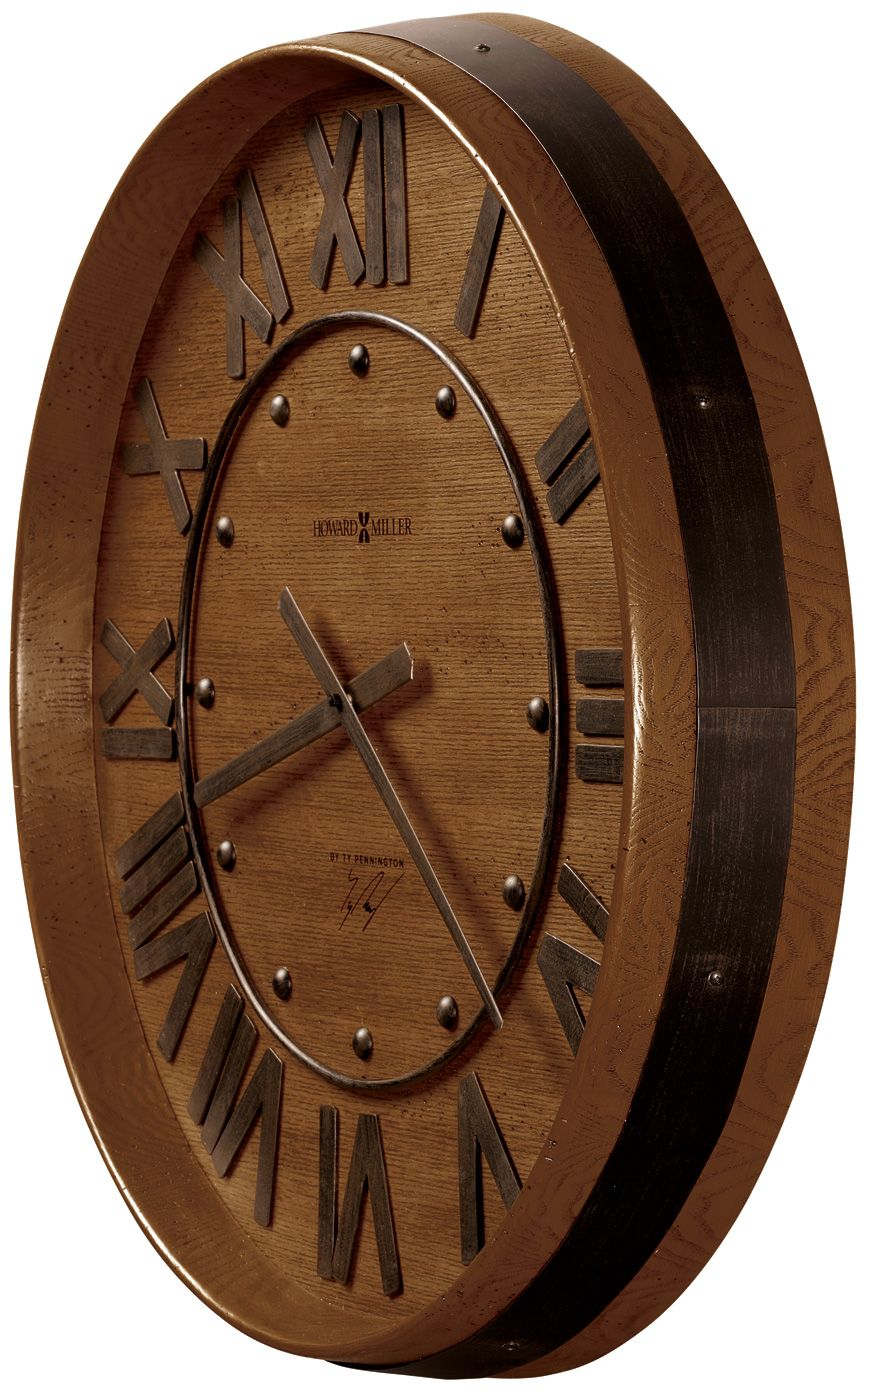 Wine Barrel Wall Clock 25 25 29 Wall Clocks Espejos